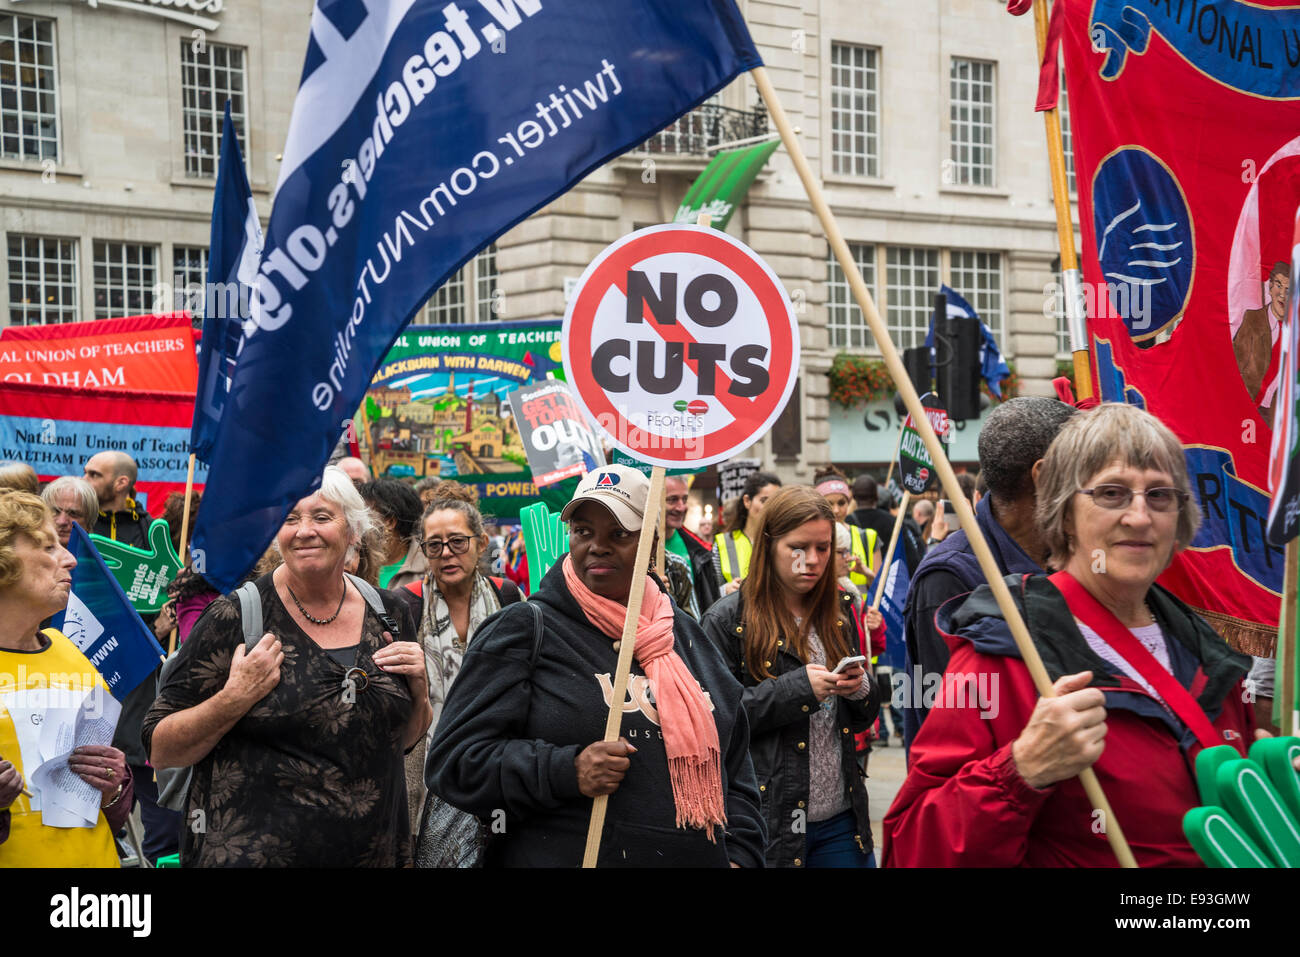 Woman with No Cuts placard. Britain Needs a Pay Rise march, London, 18 October 2014, UK Credit:  Bjanka Kadic/Alamy - Stock Image